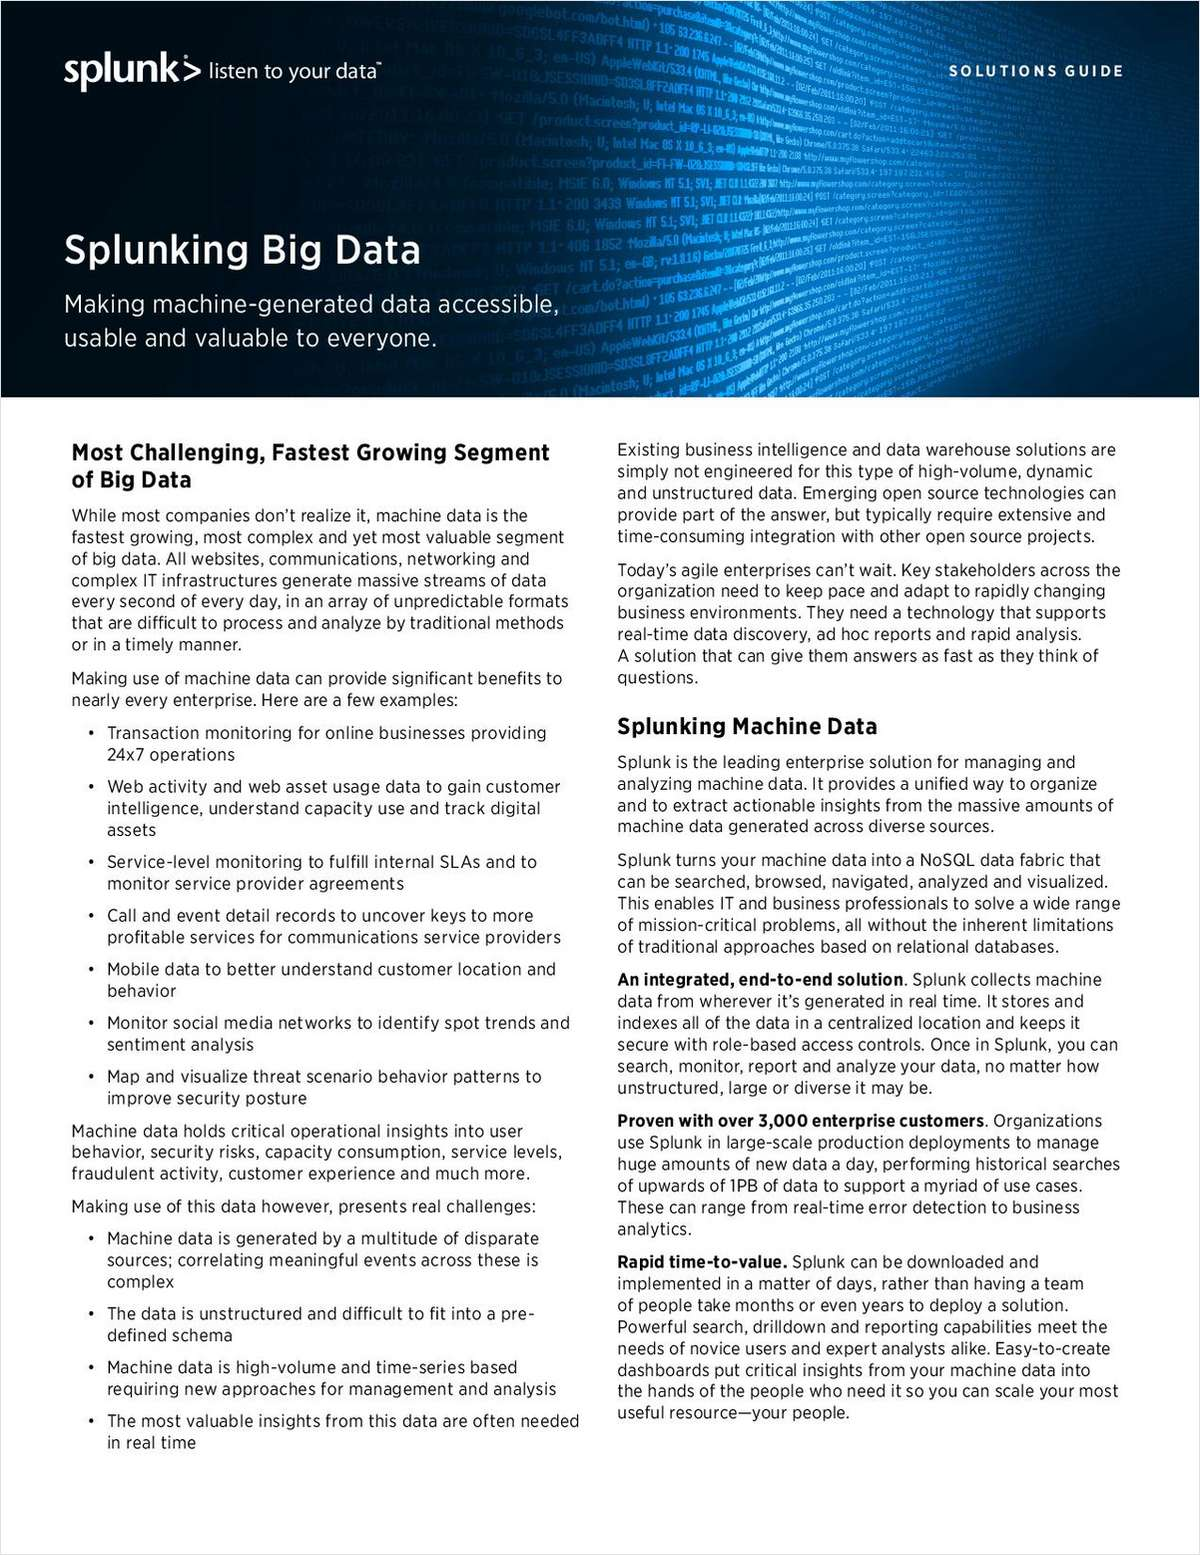 Splunk for Big Data